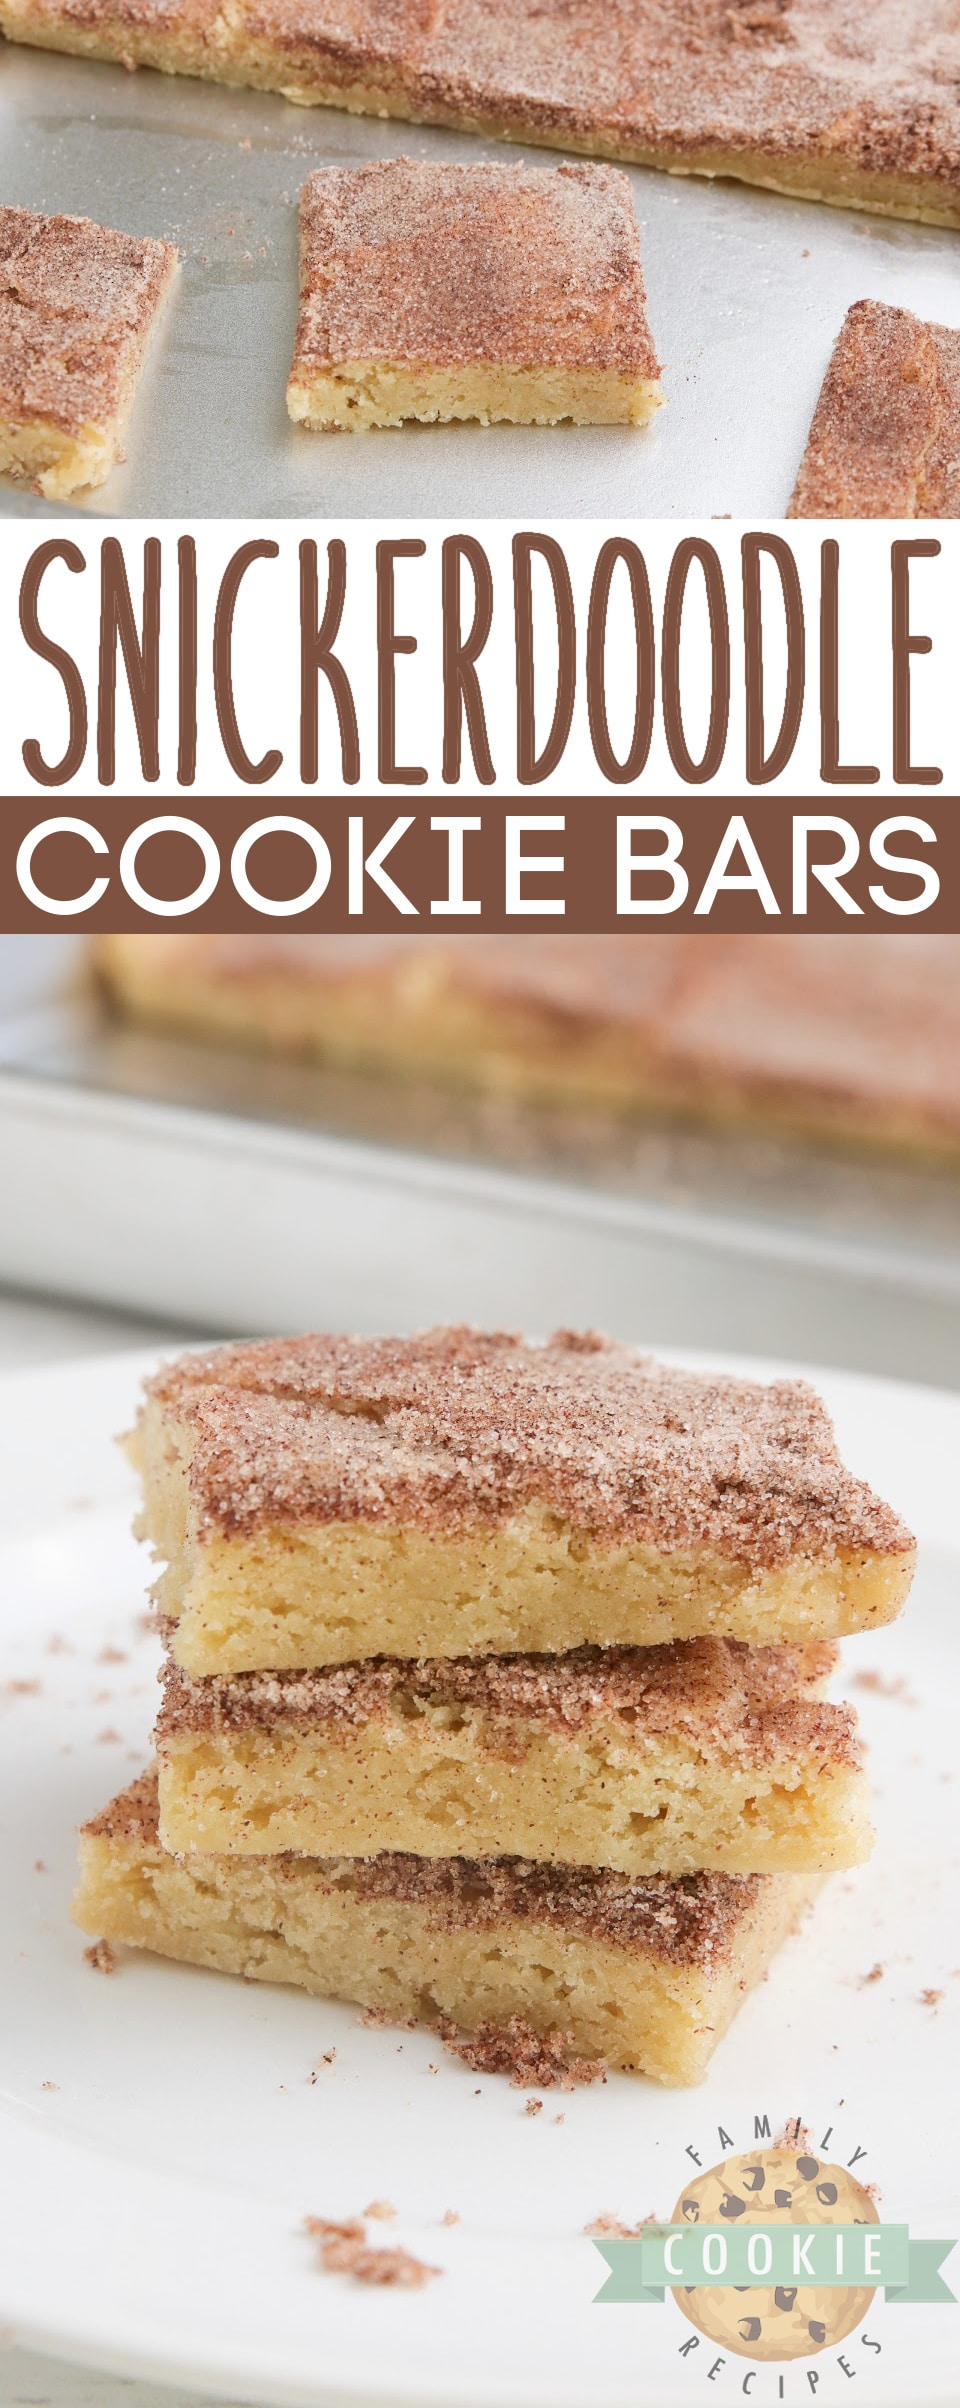 Snickerdoodle Cookie Bars are soft, delicious and packed with that cinnamon flavor we all love! Simple snickerdoodle recipe that is made in a sheet pan and can be easily sliced and served.